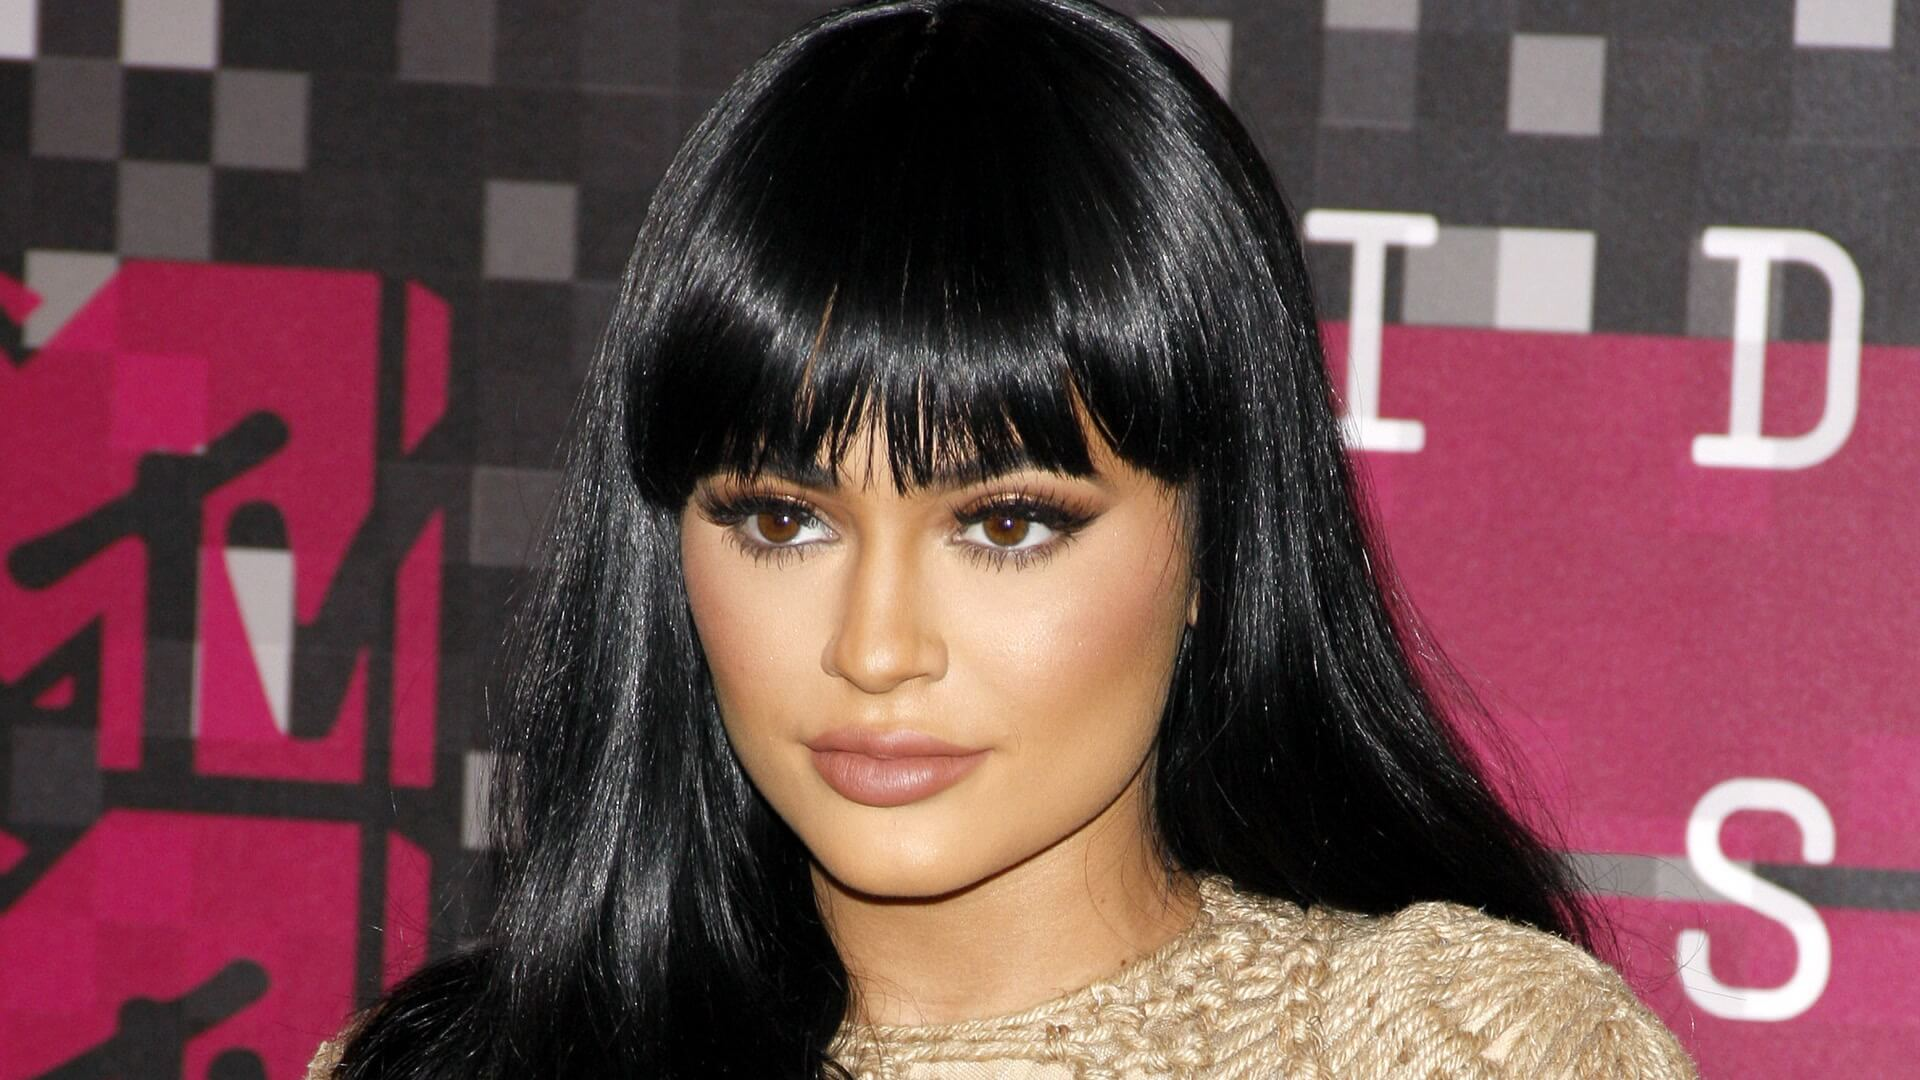 Kylie Jenner Net Worth, Age, Height, Profile, Instagram - Celebrity Net  Worth - Richest Rappers, Celebrity Houses and Salary